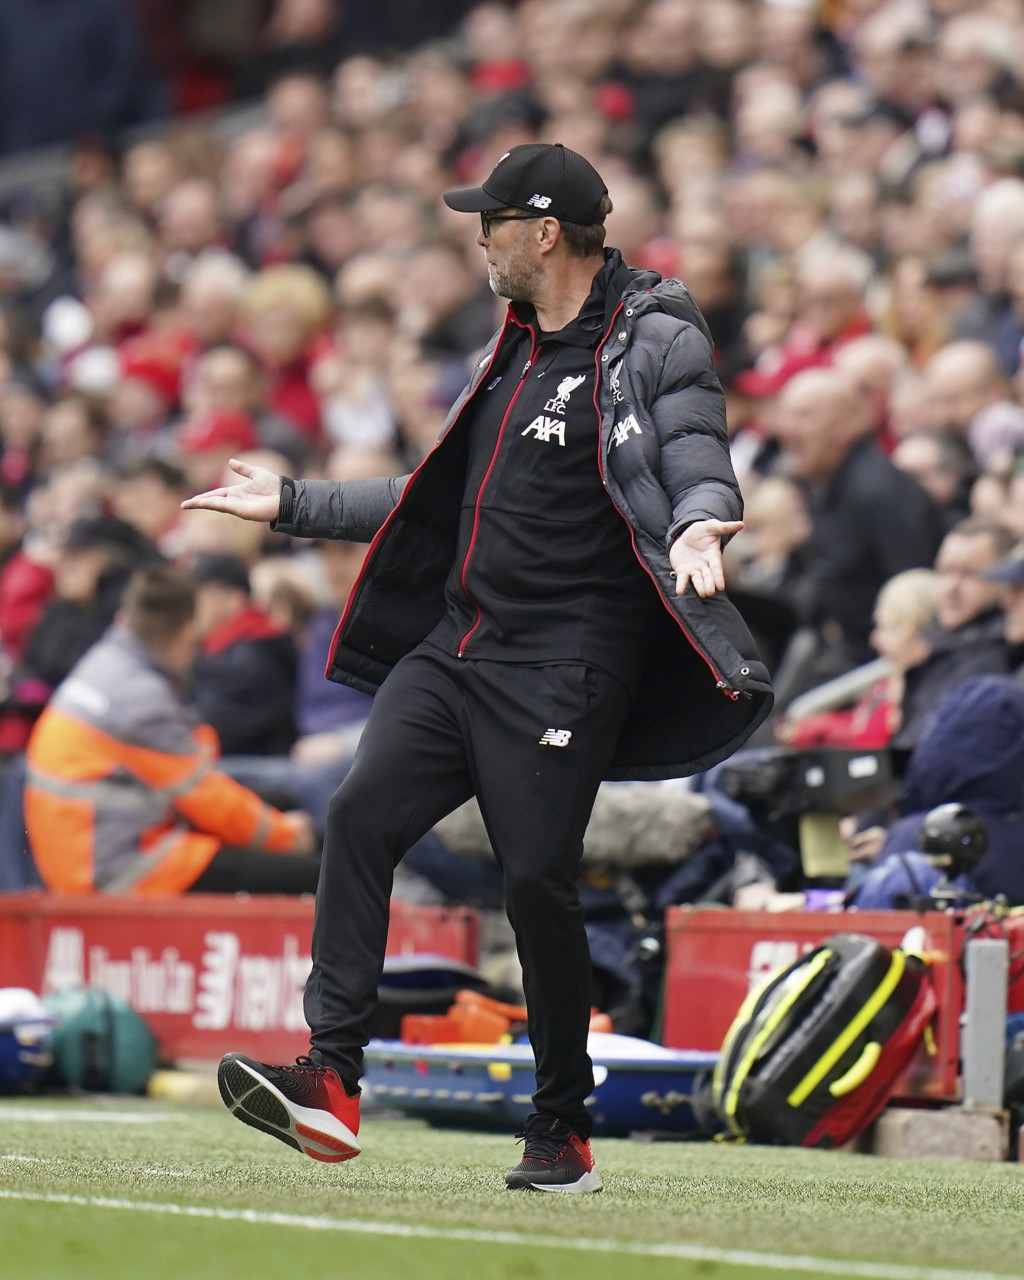 Liverpool's manager Jurgen Klopp reacts after Bournemouth's Callum Wilson scored his side's opening goal during the English Premier League soccer matc...